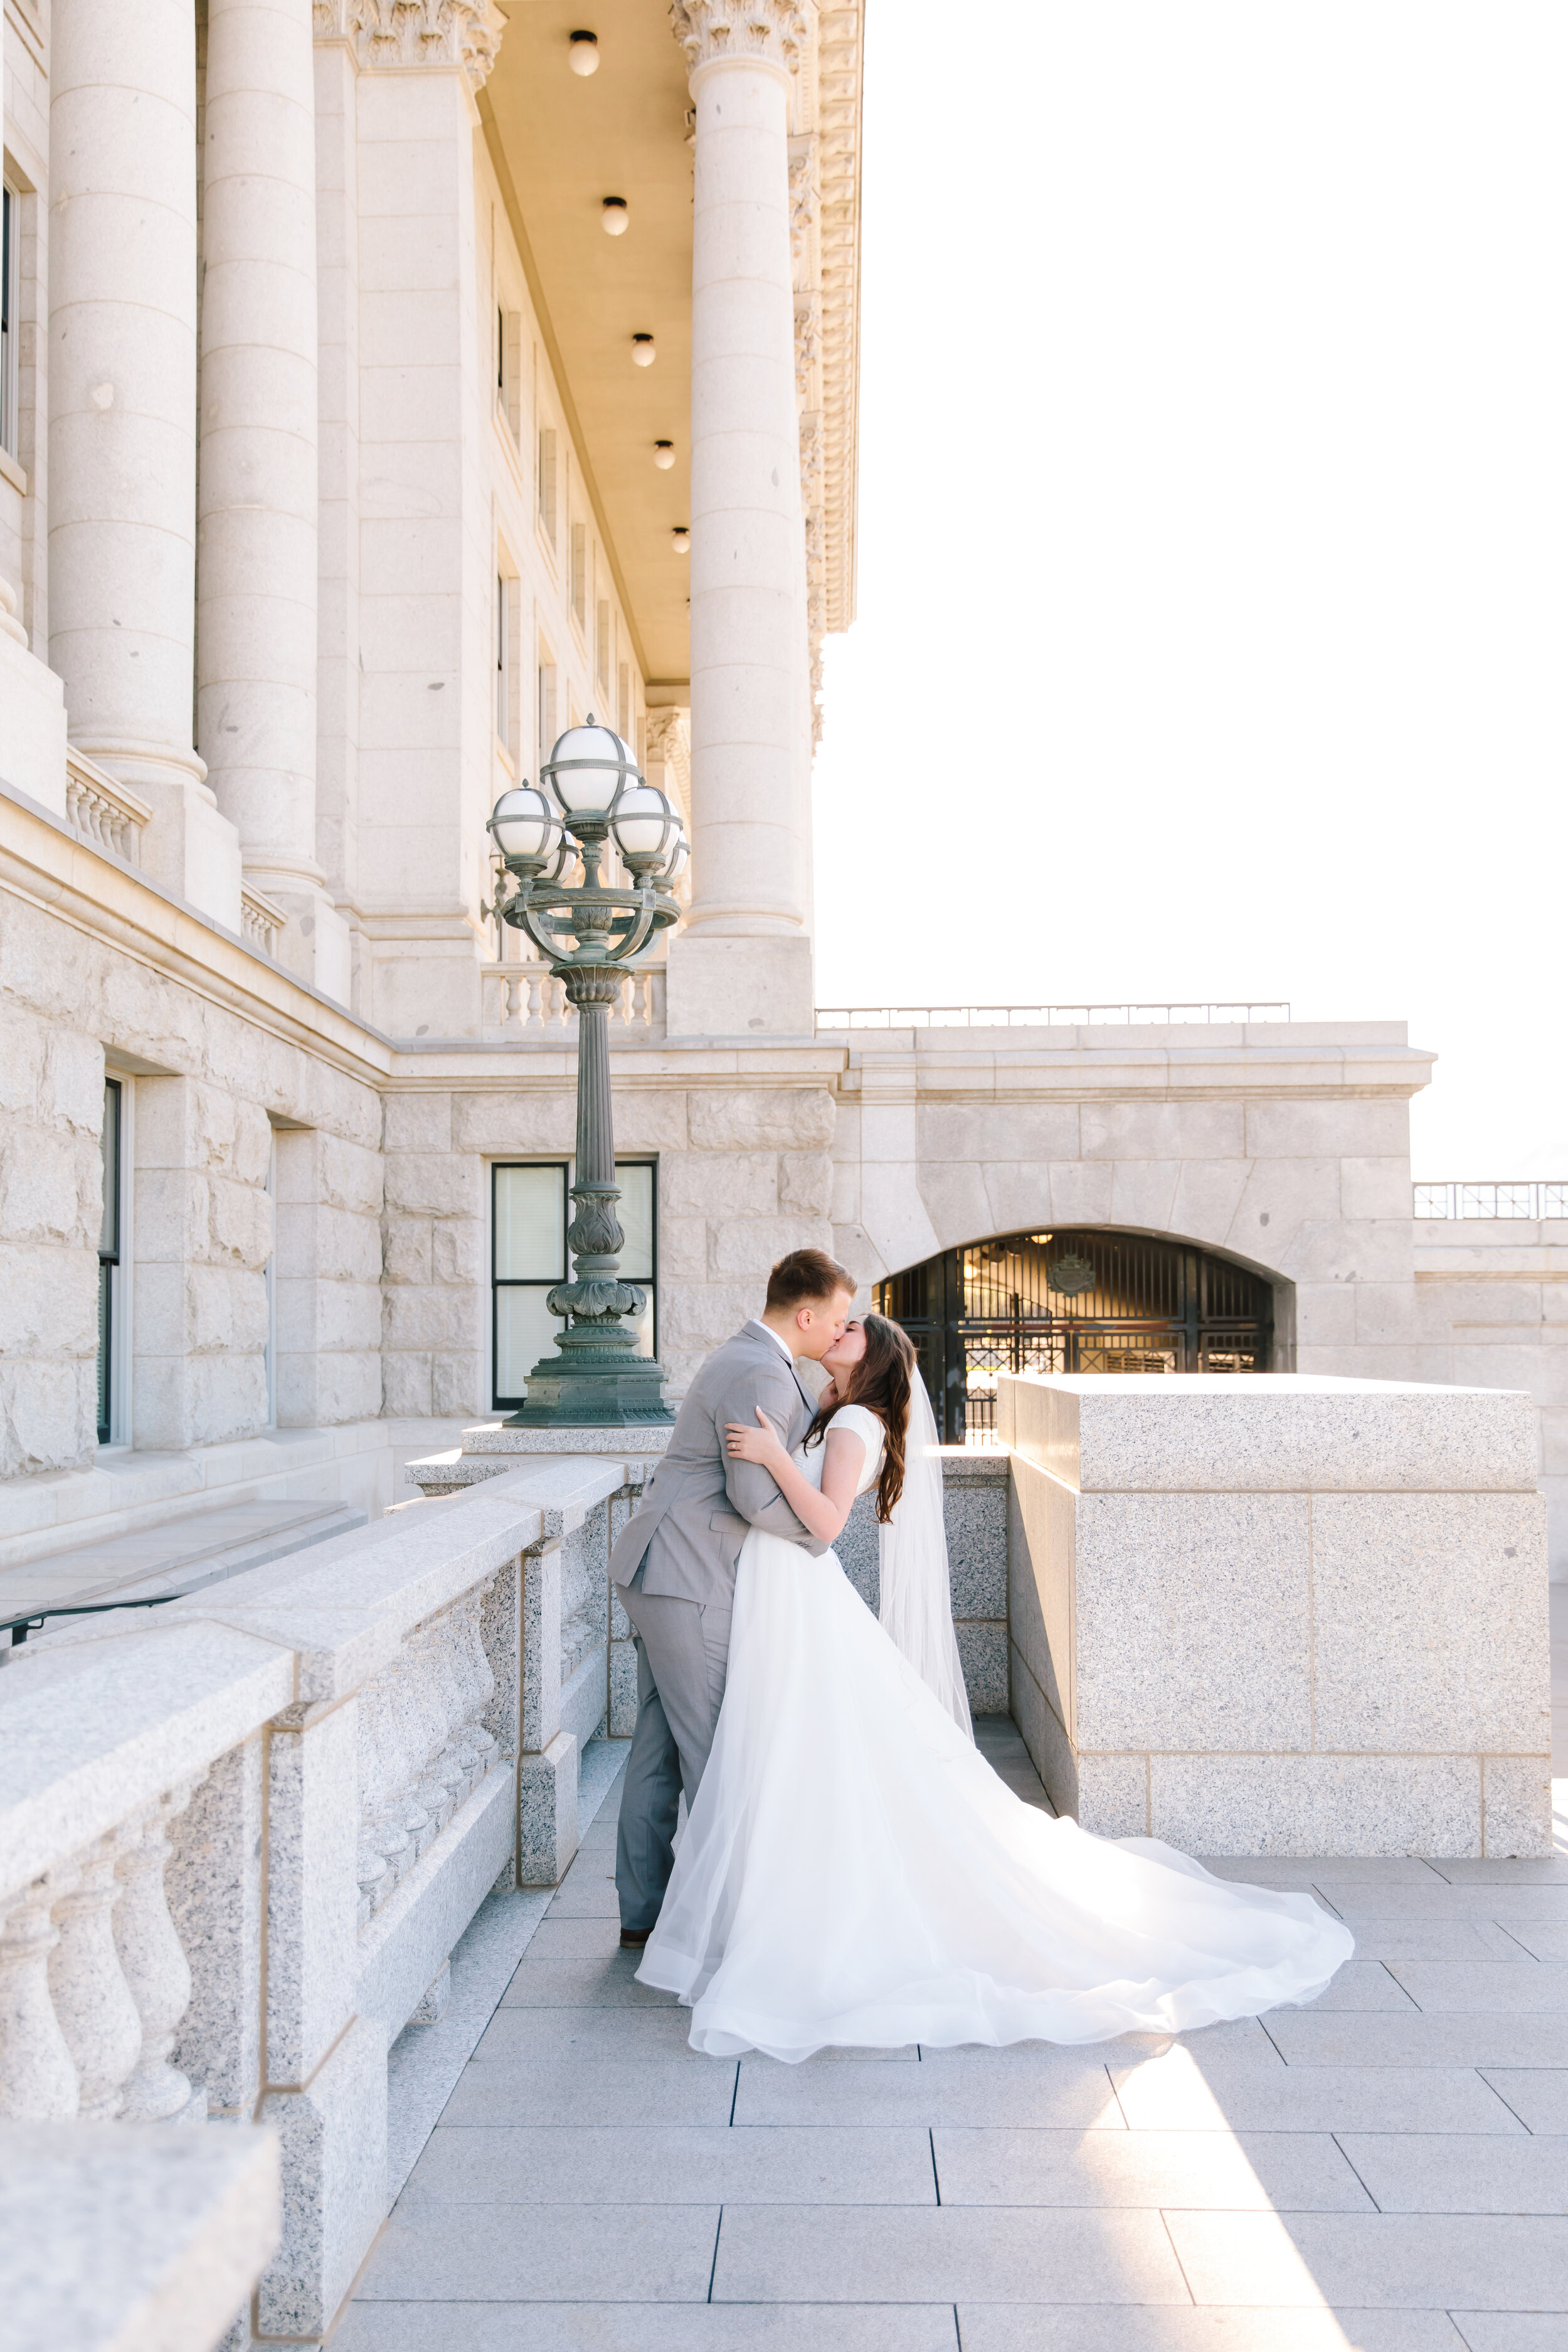 standing by the lamp post slight dip couples pose inspiration romantic scenery romantic couple beautiful couple soon to be man and wife beautiful light and airy glowing couple so in love true love couple goals wedding inspiration morning professional photo shoot formals love #formals #saltlakecity #capitalbuilding #lovebirds #couplegoals #bridal #weddinginspo #wedding #professional #photographer